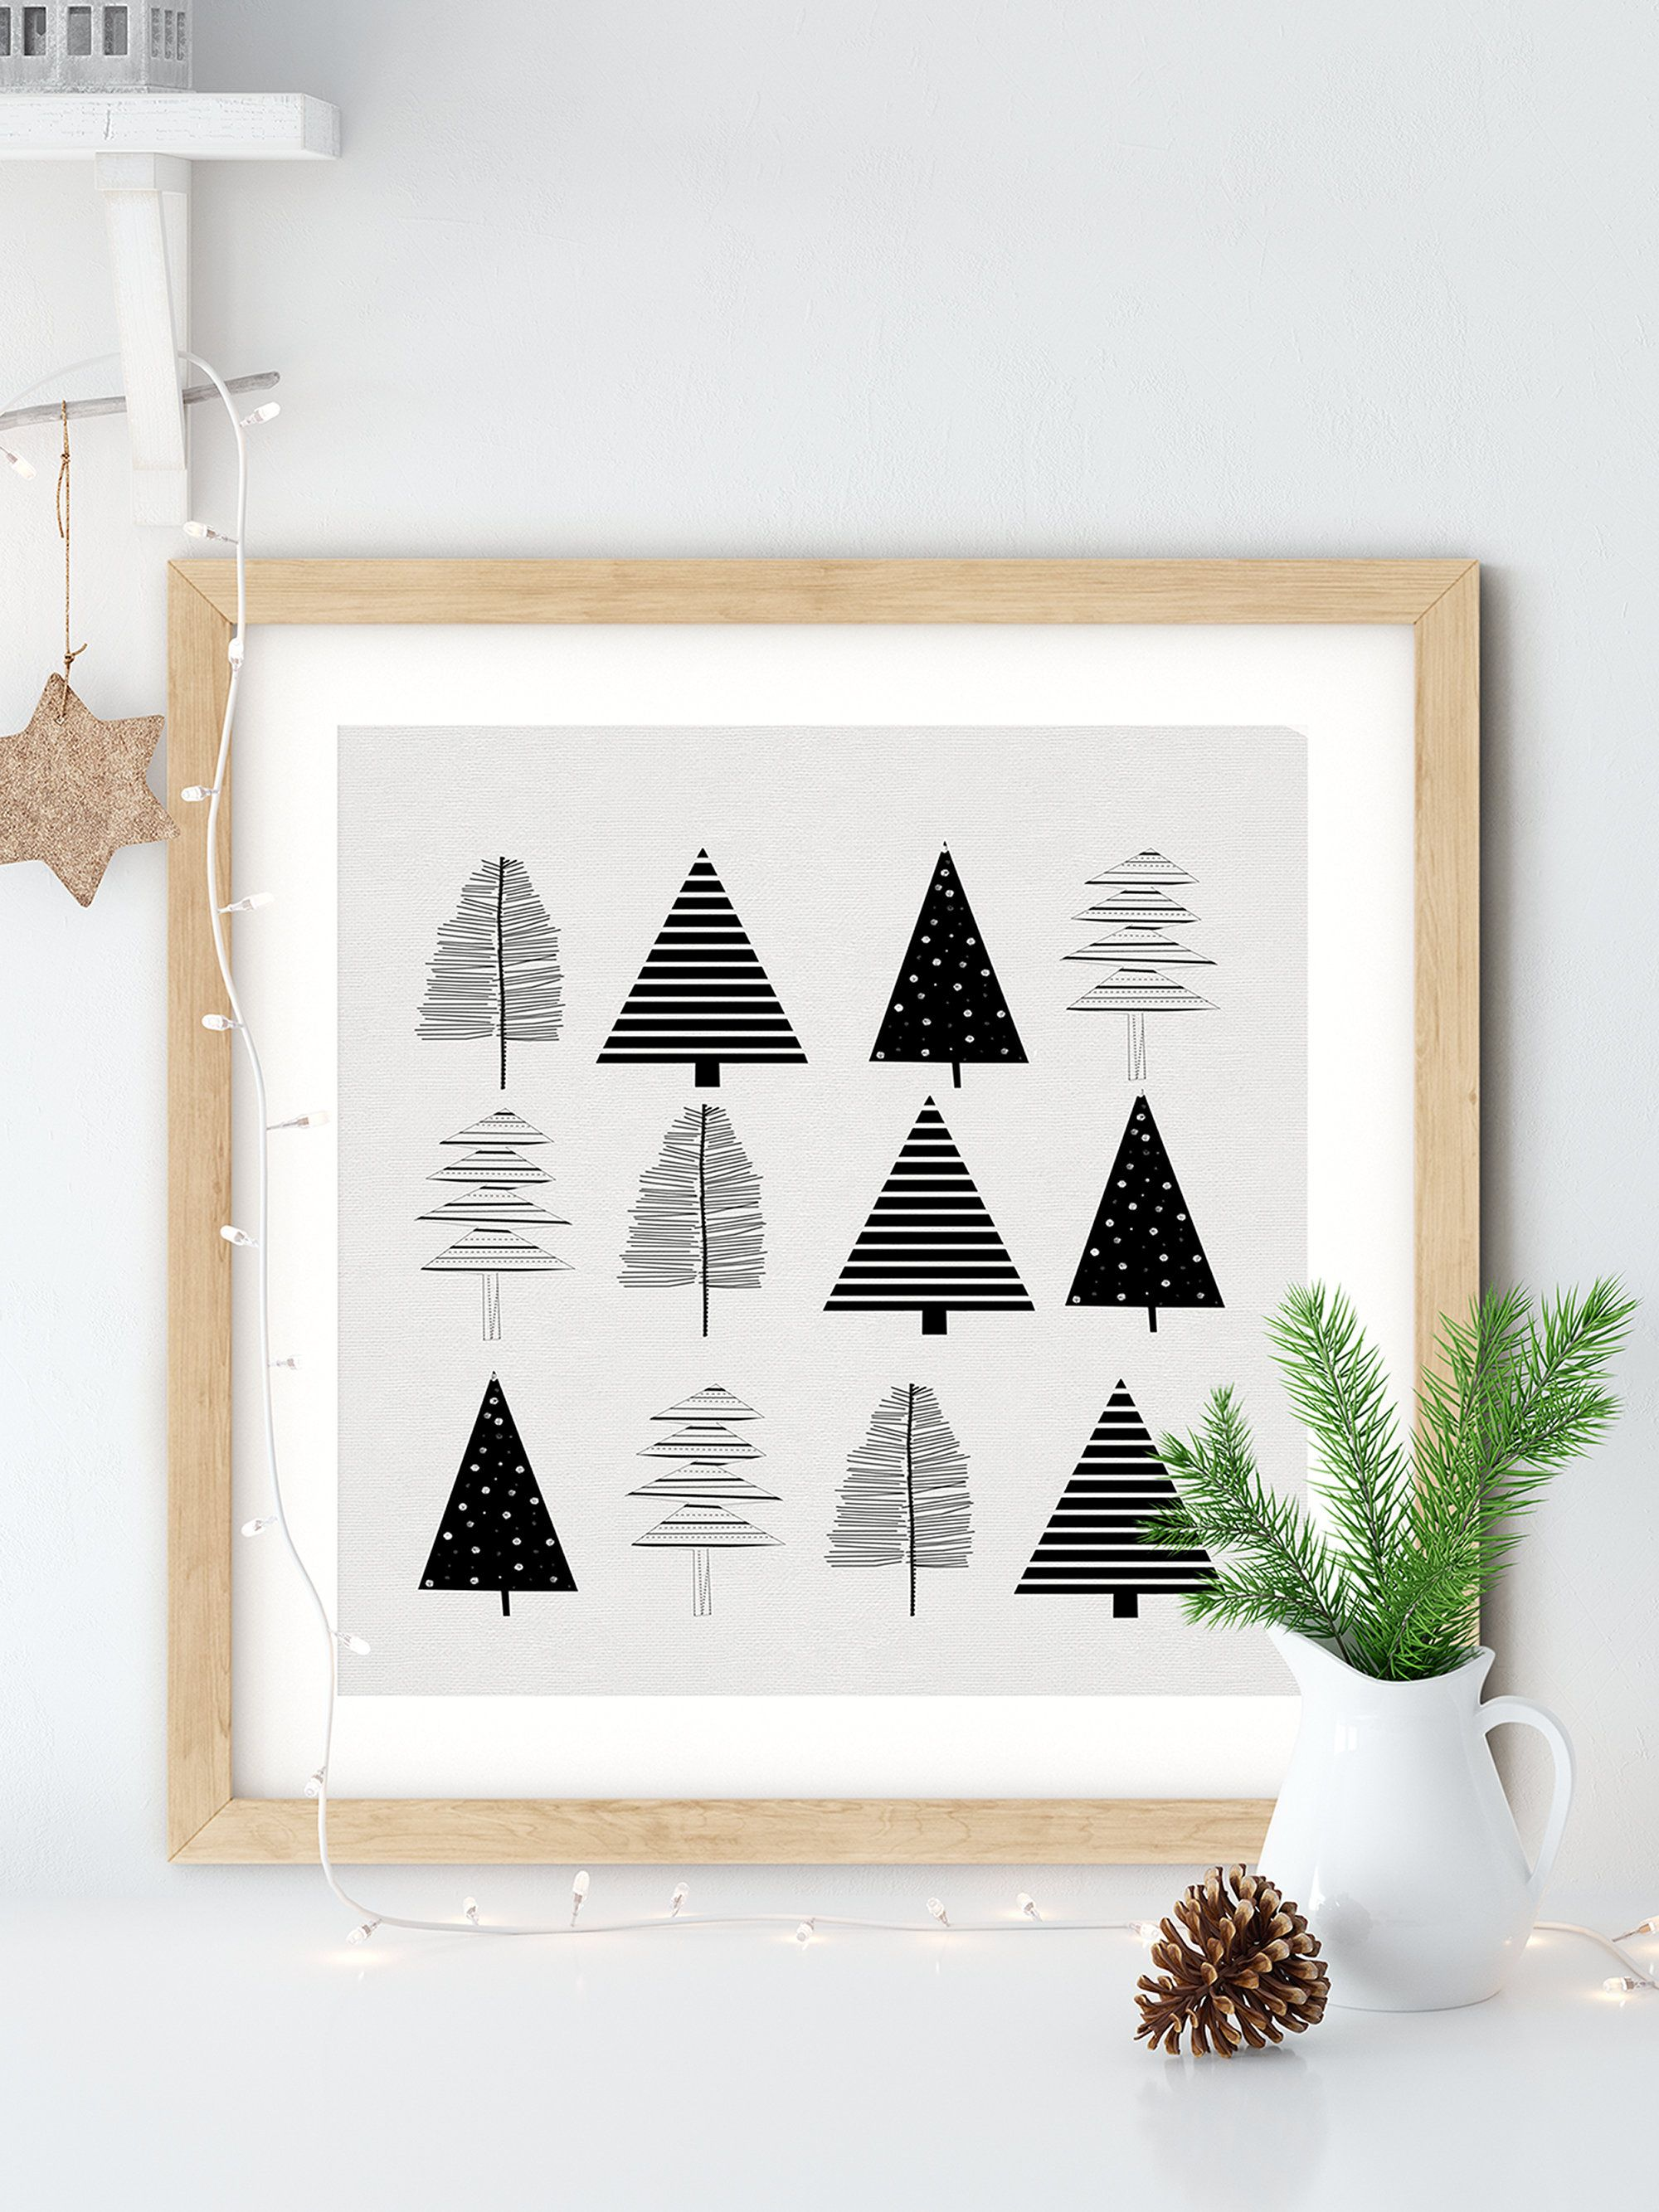 Scandi Style Holiday Printable Art In Black And White Modern Etsy In 2020 Minimalist Christmas Decor Modern Christmas Decor Minimalist Christmas